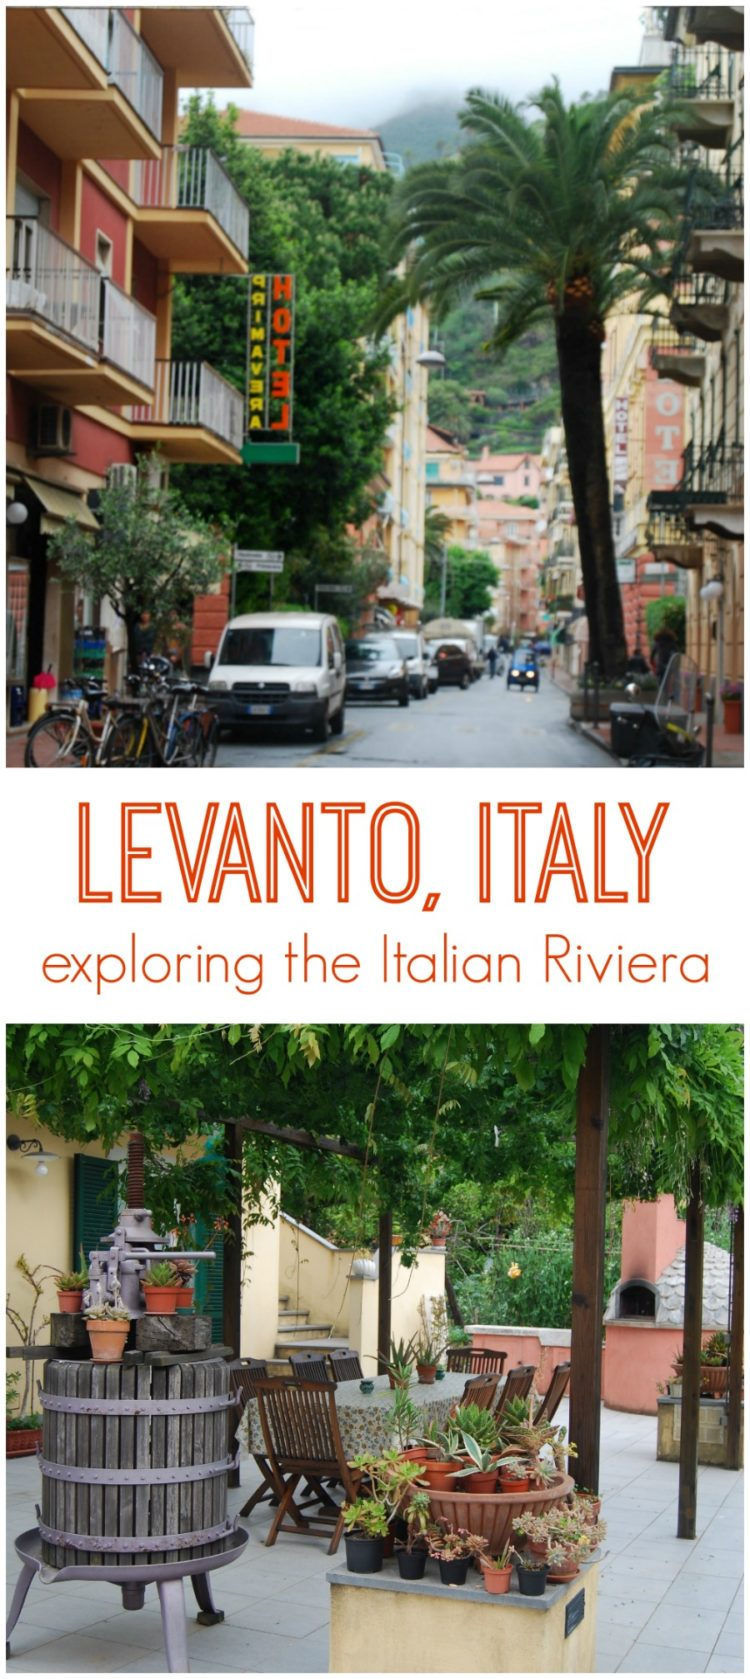 Exploring Levanto, Italy, our favorite seaside town on the Italian Riviera right by the Cinque Terre.